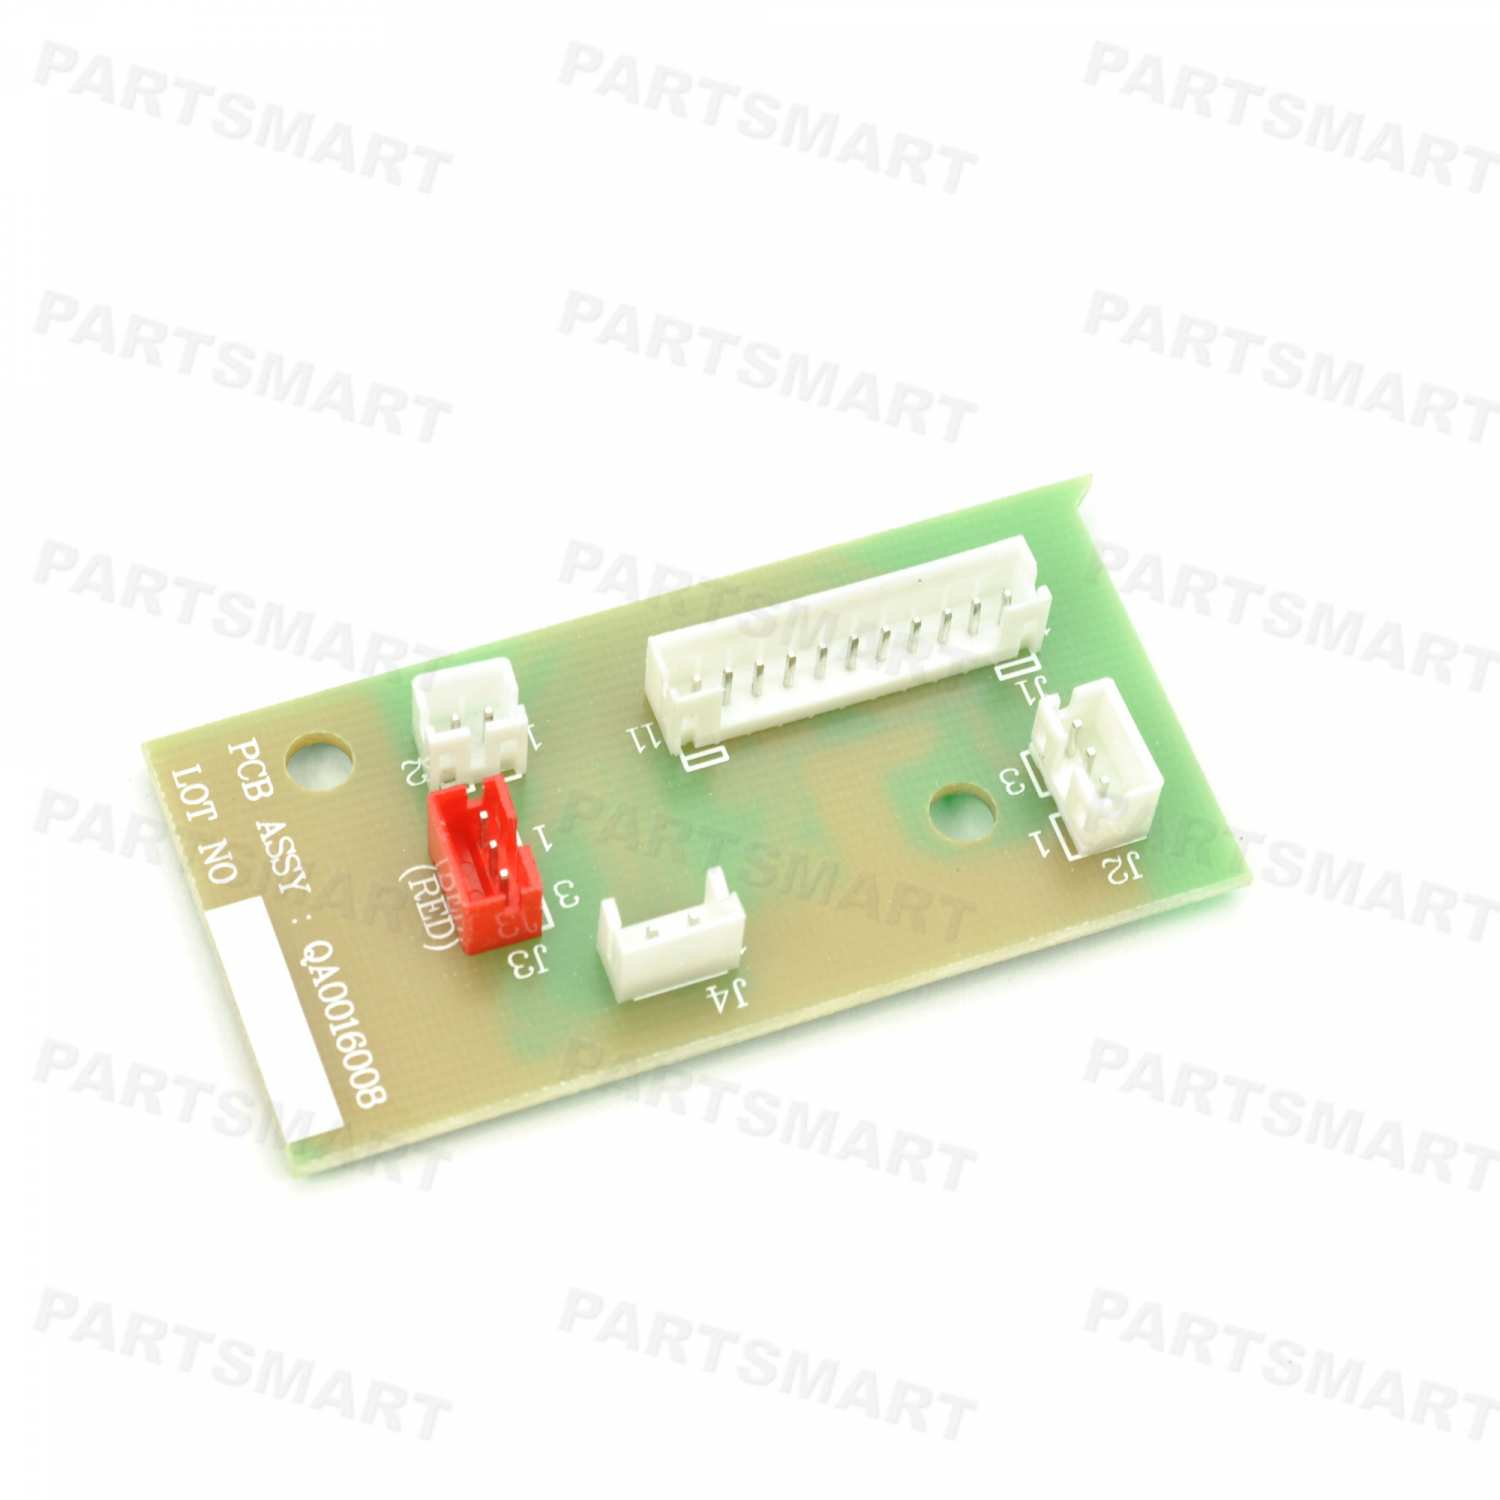 CARD-T640 Card ASM Fuser for Lexmark T64x